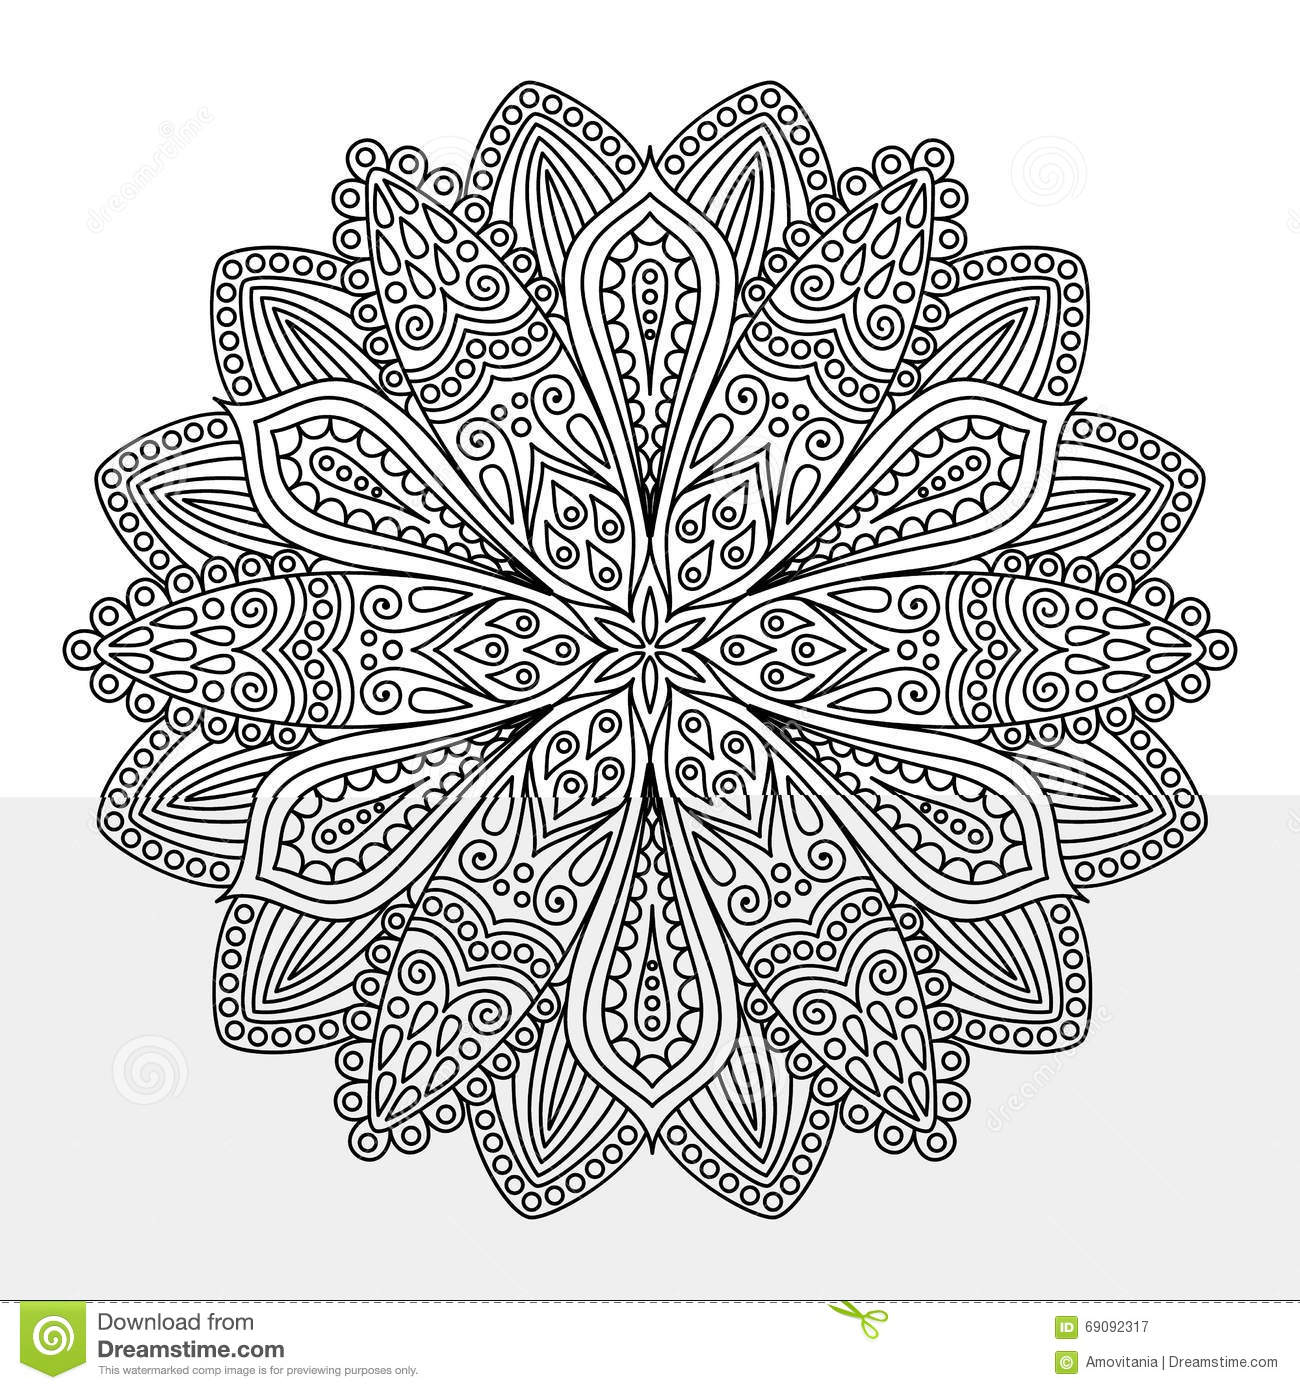 intricate design coloring pages - intricate flower coloring page stock vector illustration